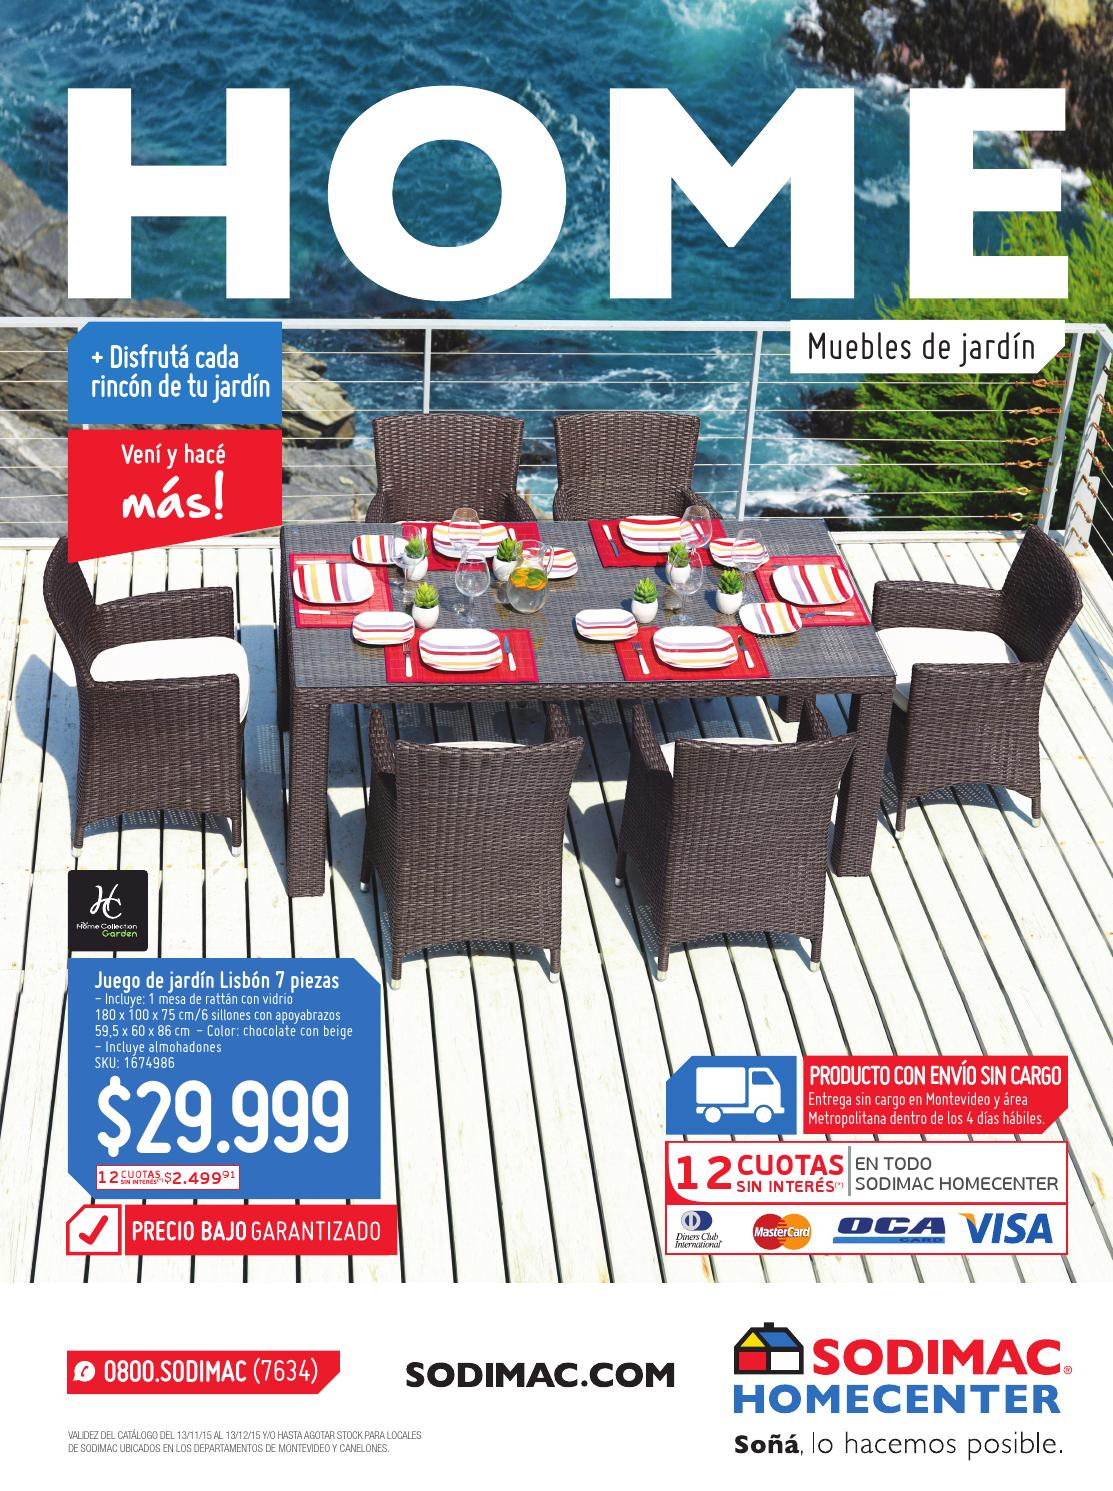 Sodimac homecenter cat logo especial muebles de jard n for Muebles plastico jardin